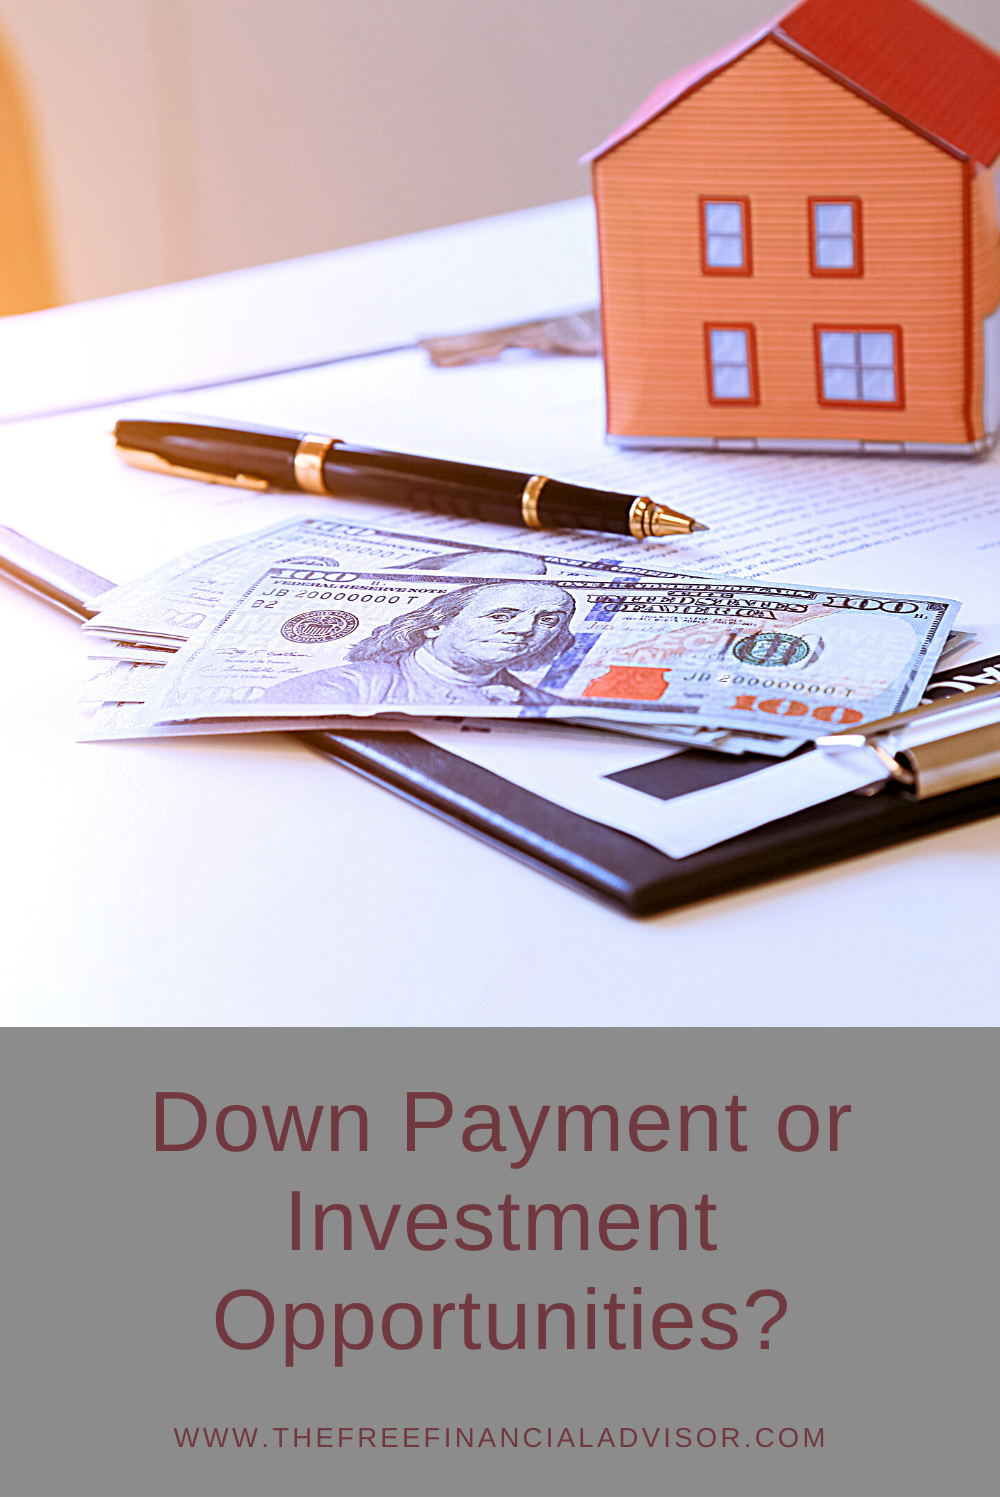 Down Payment or Investment Opportunities